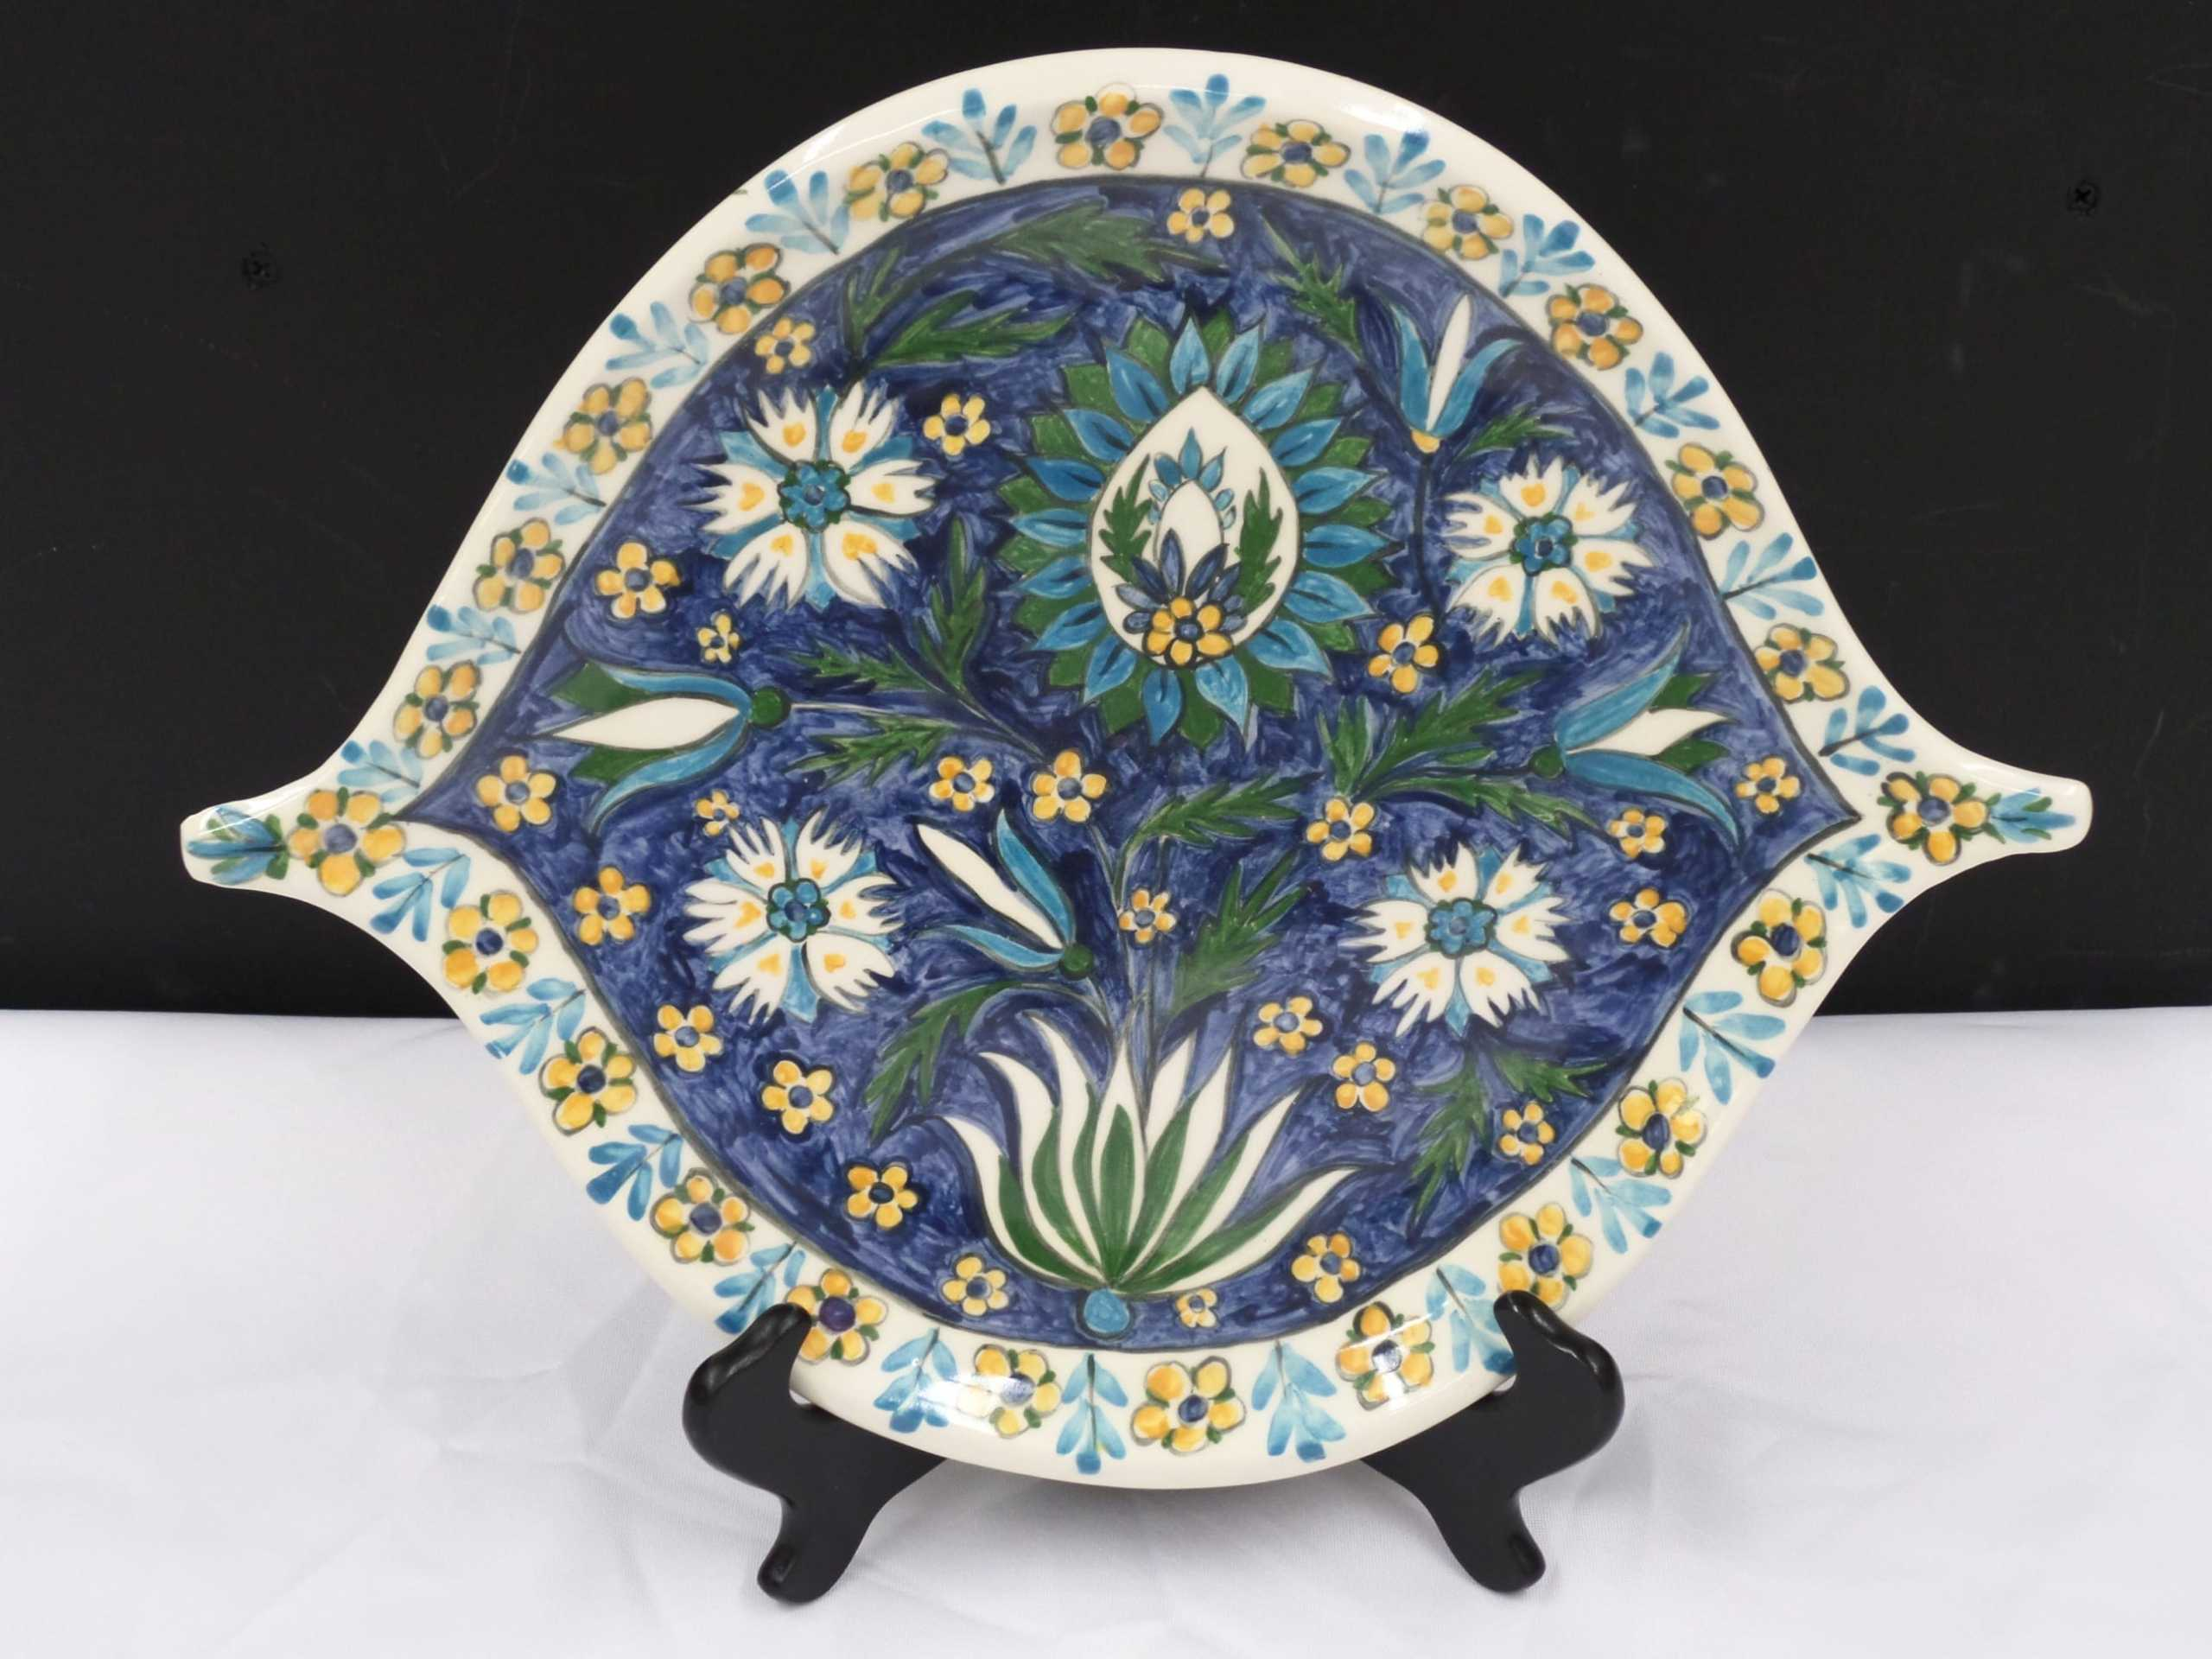 """11"""" FLORAL CERAMIC PLATE  Donated by: ARTIST URSULA MICKLE  Valued at: $80"""